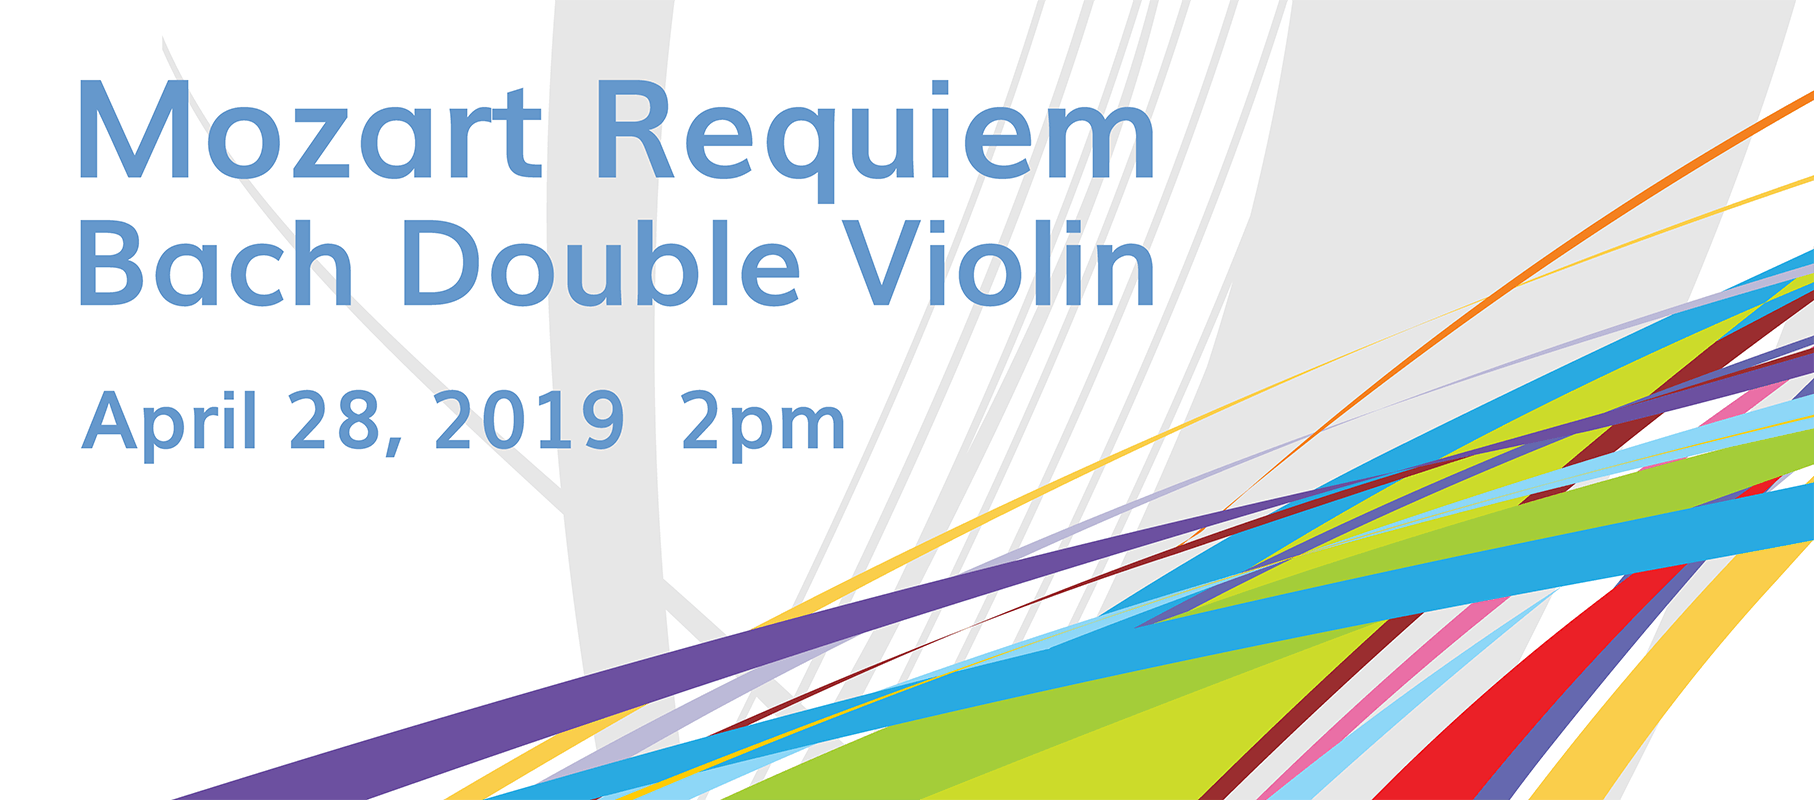 Mozart's Requiem and Bach's Double Violin